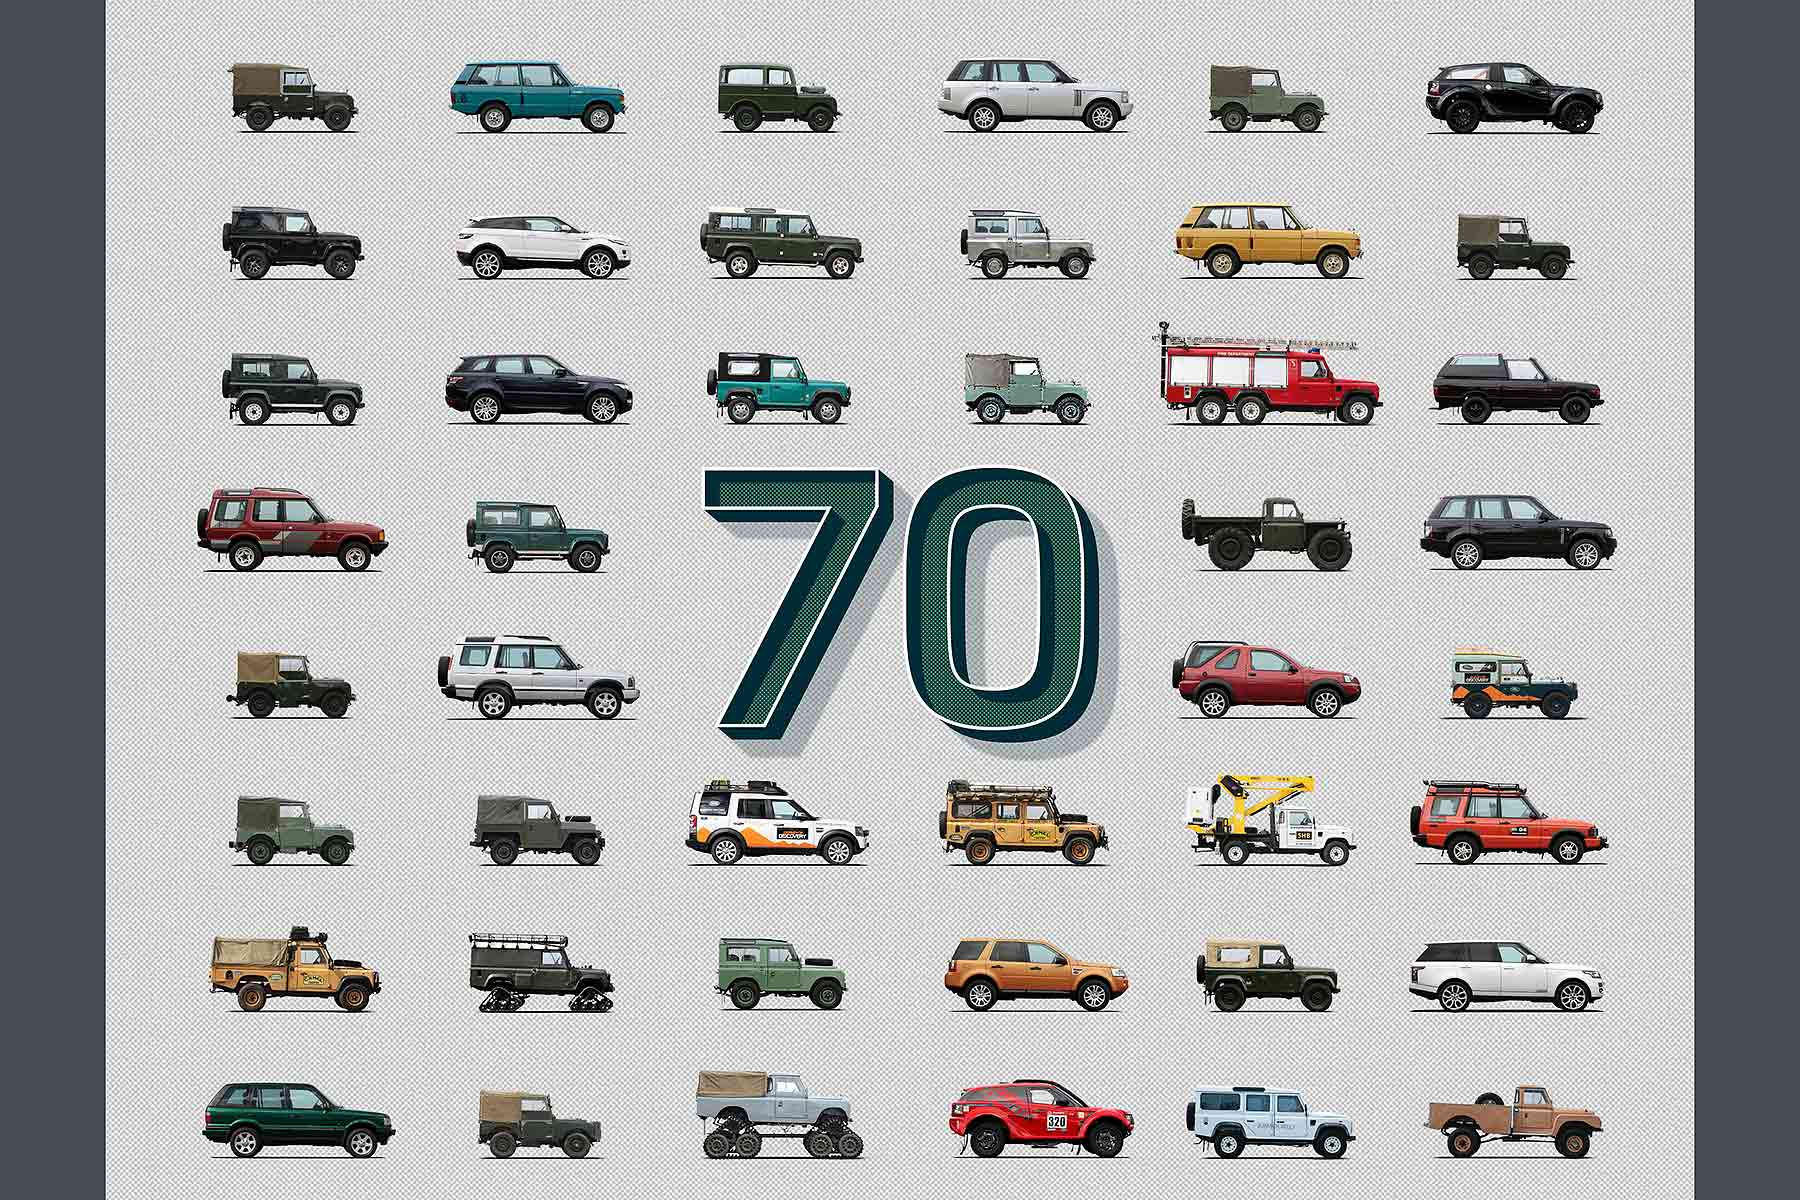 Land Rover 70 years of history